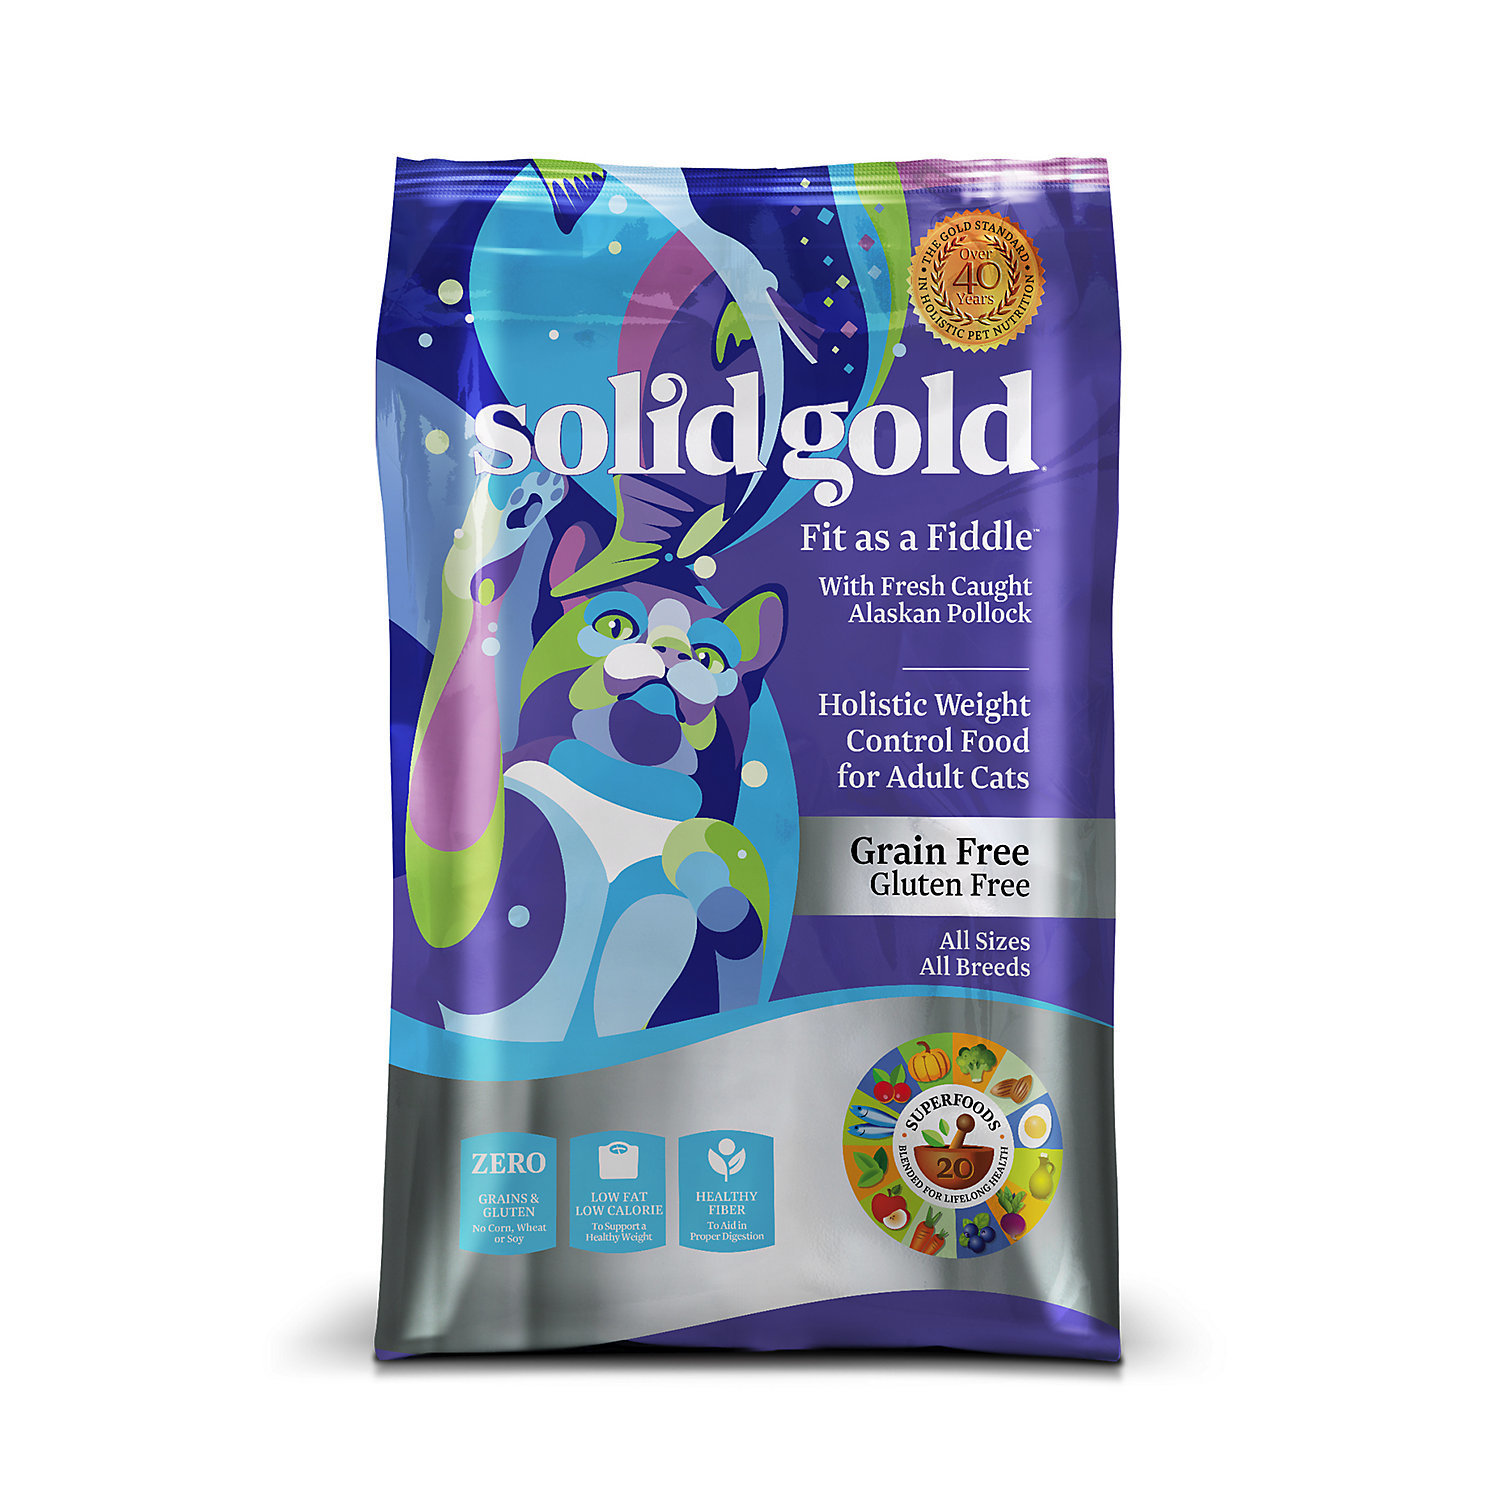 Solid Gold Fit As A Fiddle Alaskan Pollock Weight Control Adult Cat Food, 12 lbs (10/18) (A.M2)